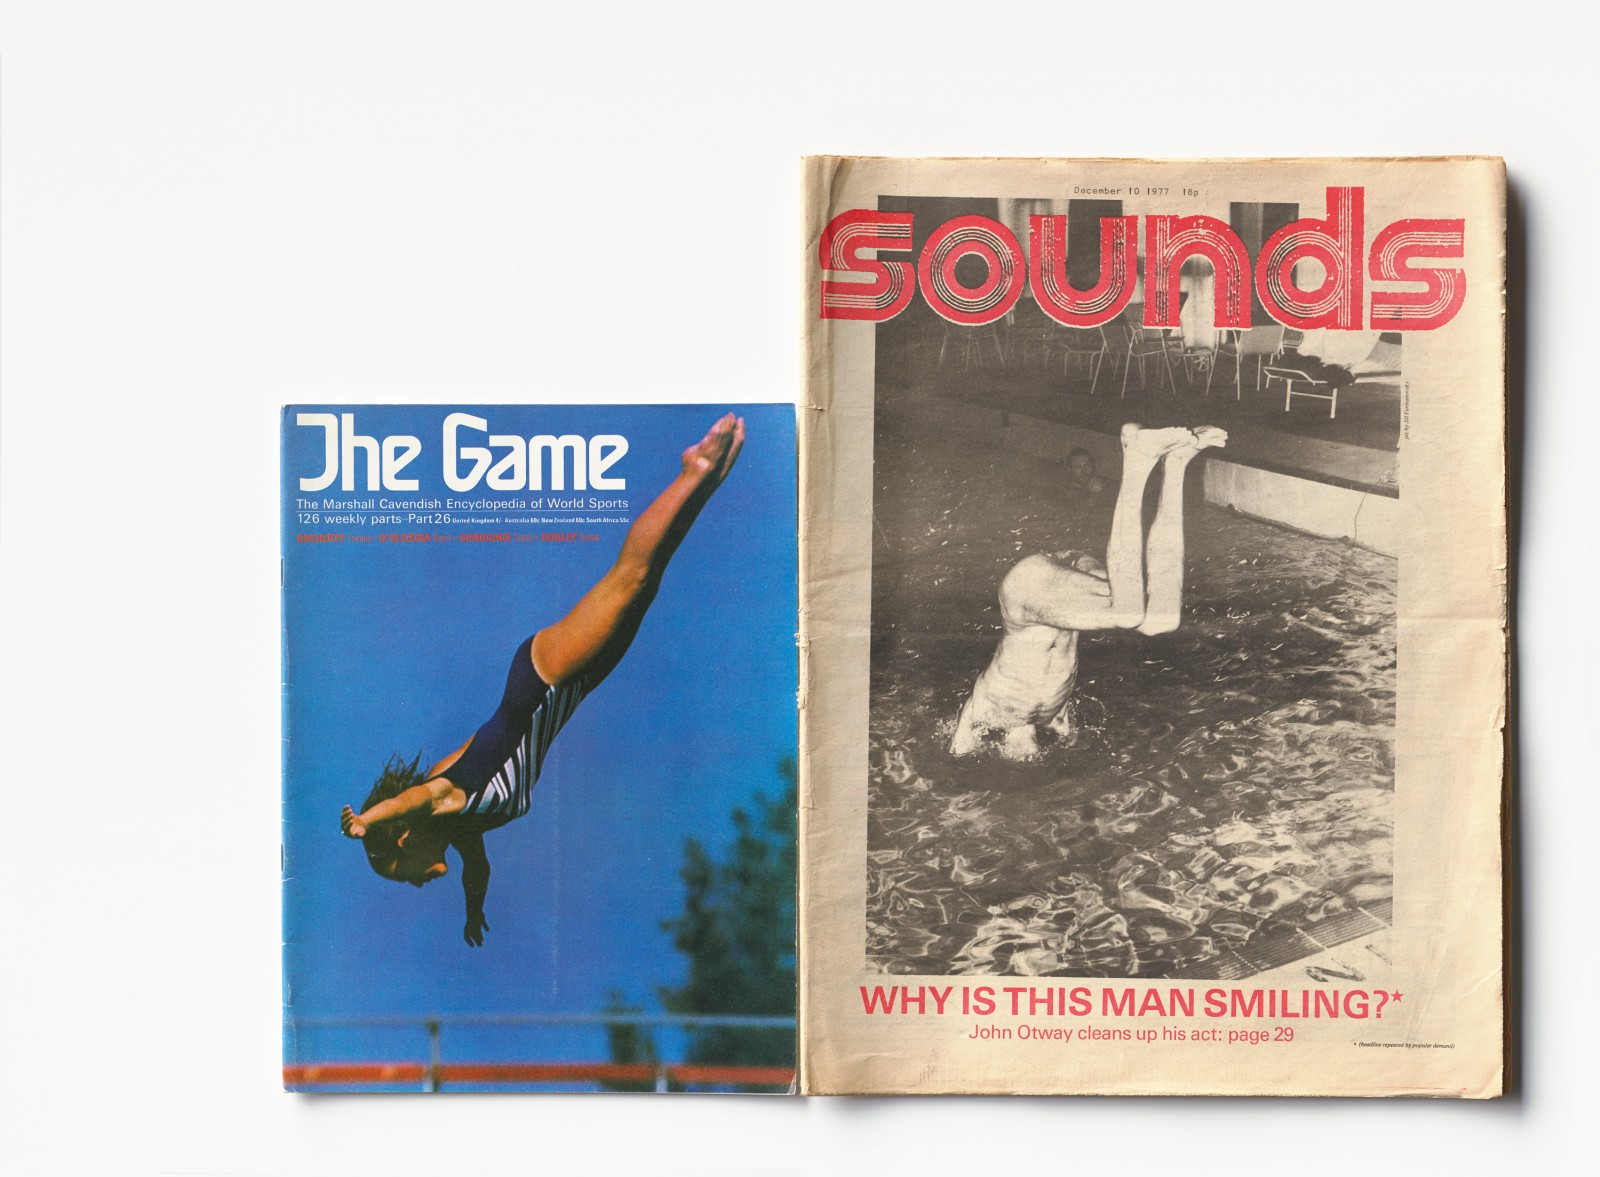 COVER THE GAME #26:1970 - SOUNDS 10:12:1977